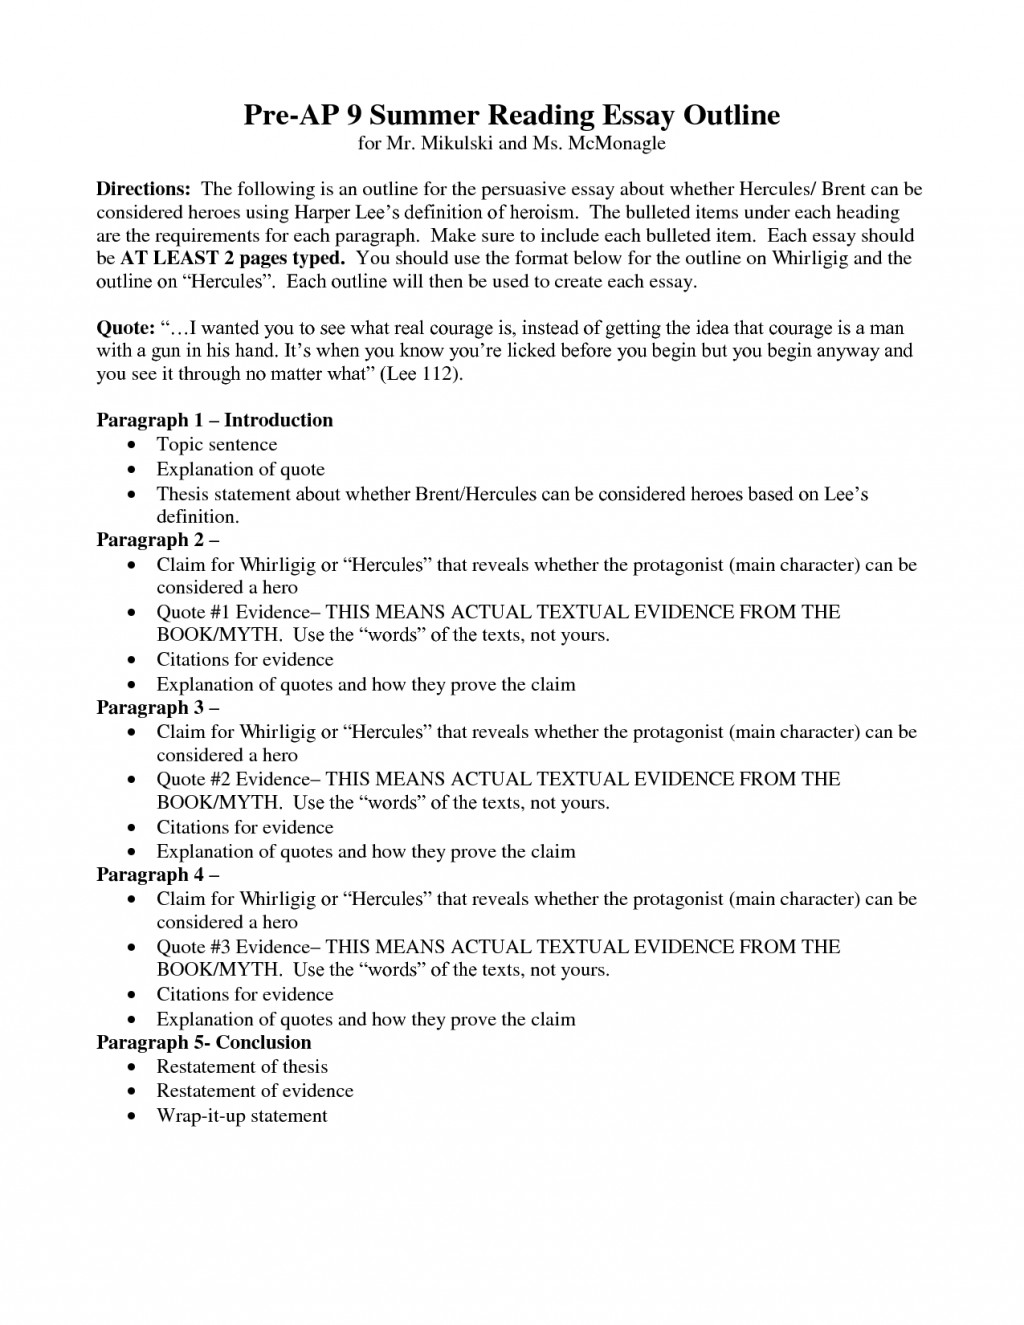 018 Definition Essay Outline Example Writing About Heroism Essays Sample Format Of Freedom On Happiness Success Topics Love Family Respect Extended Phenomenal Large